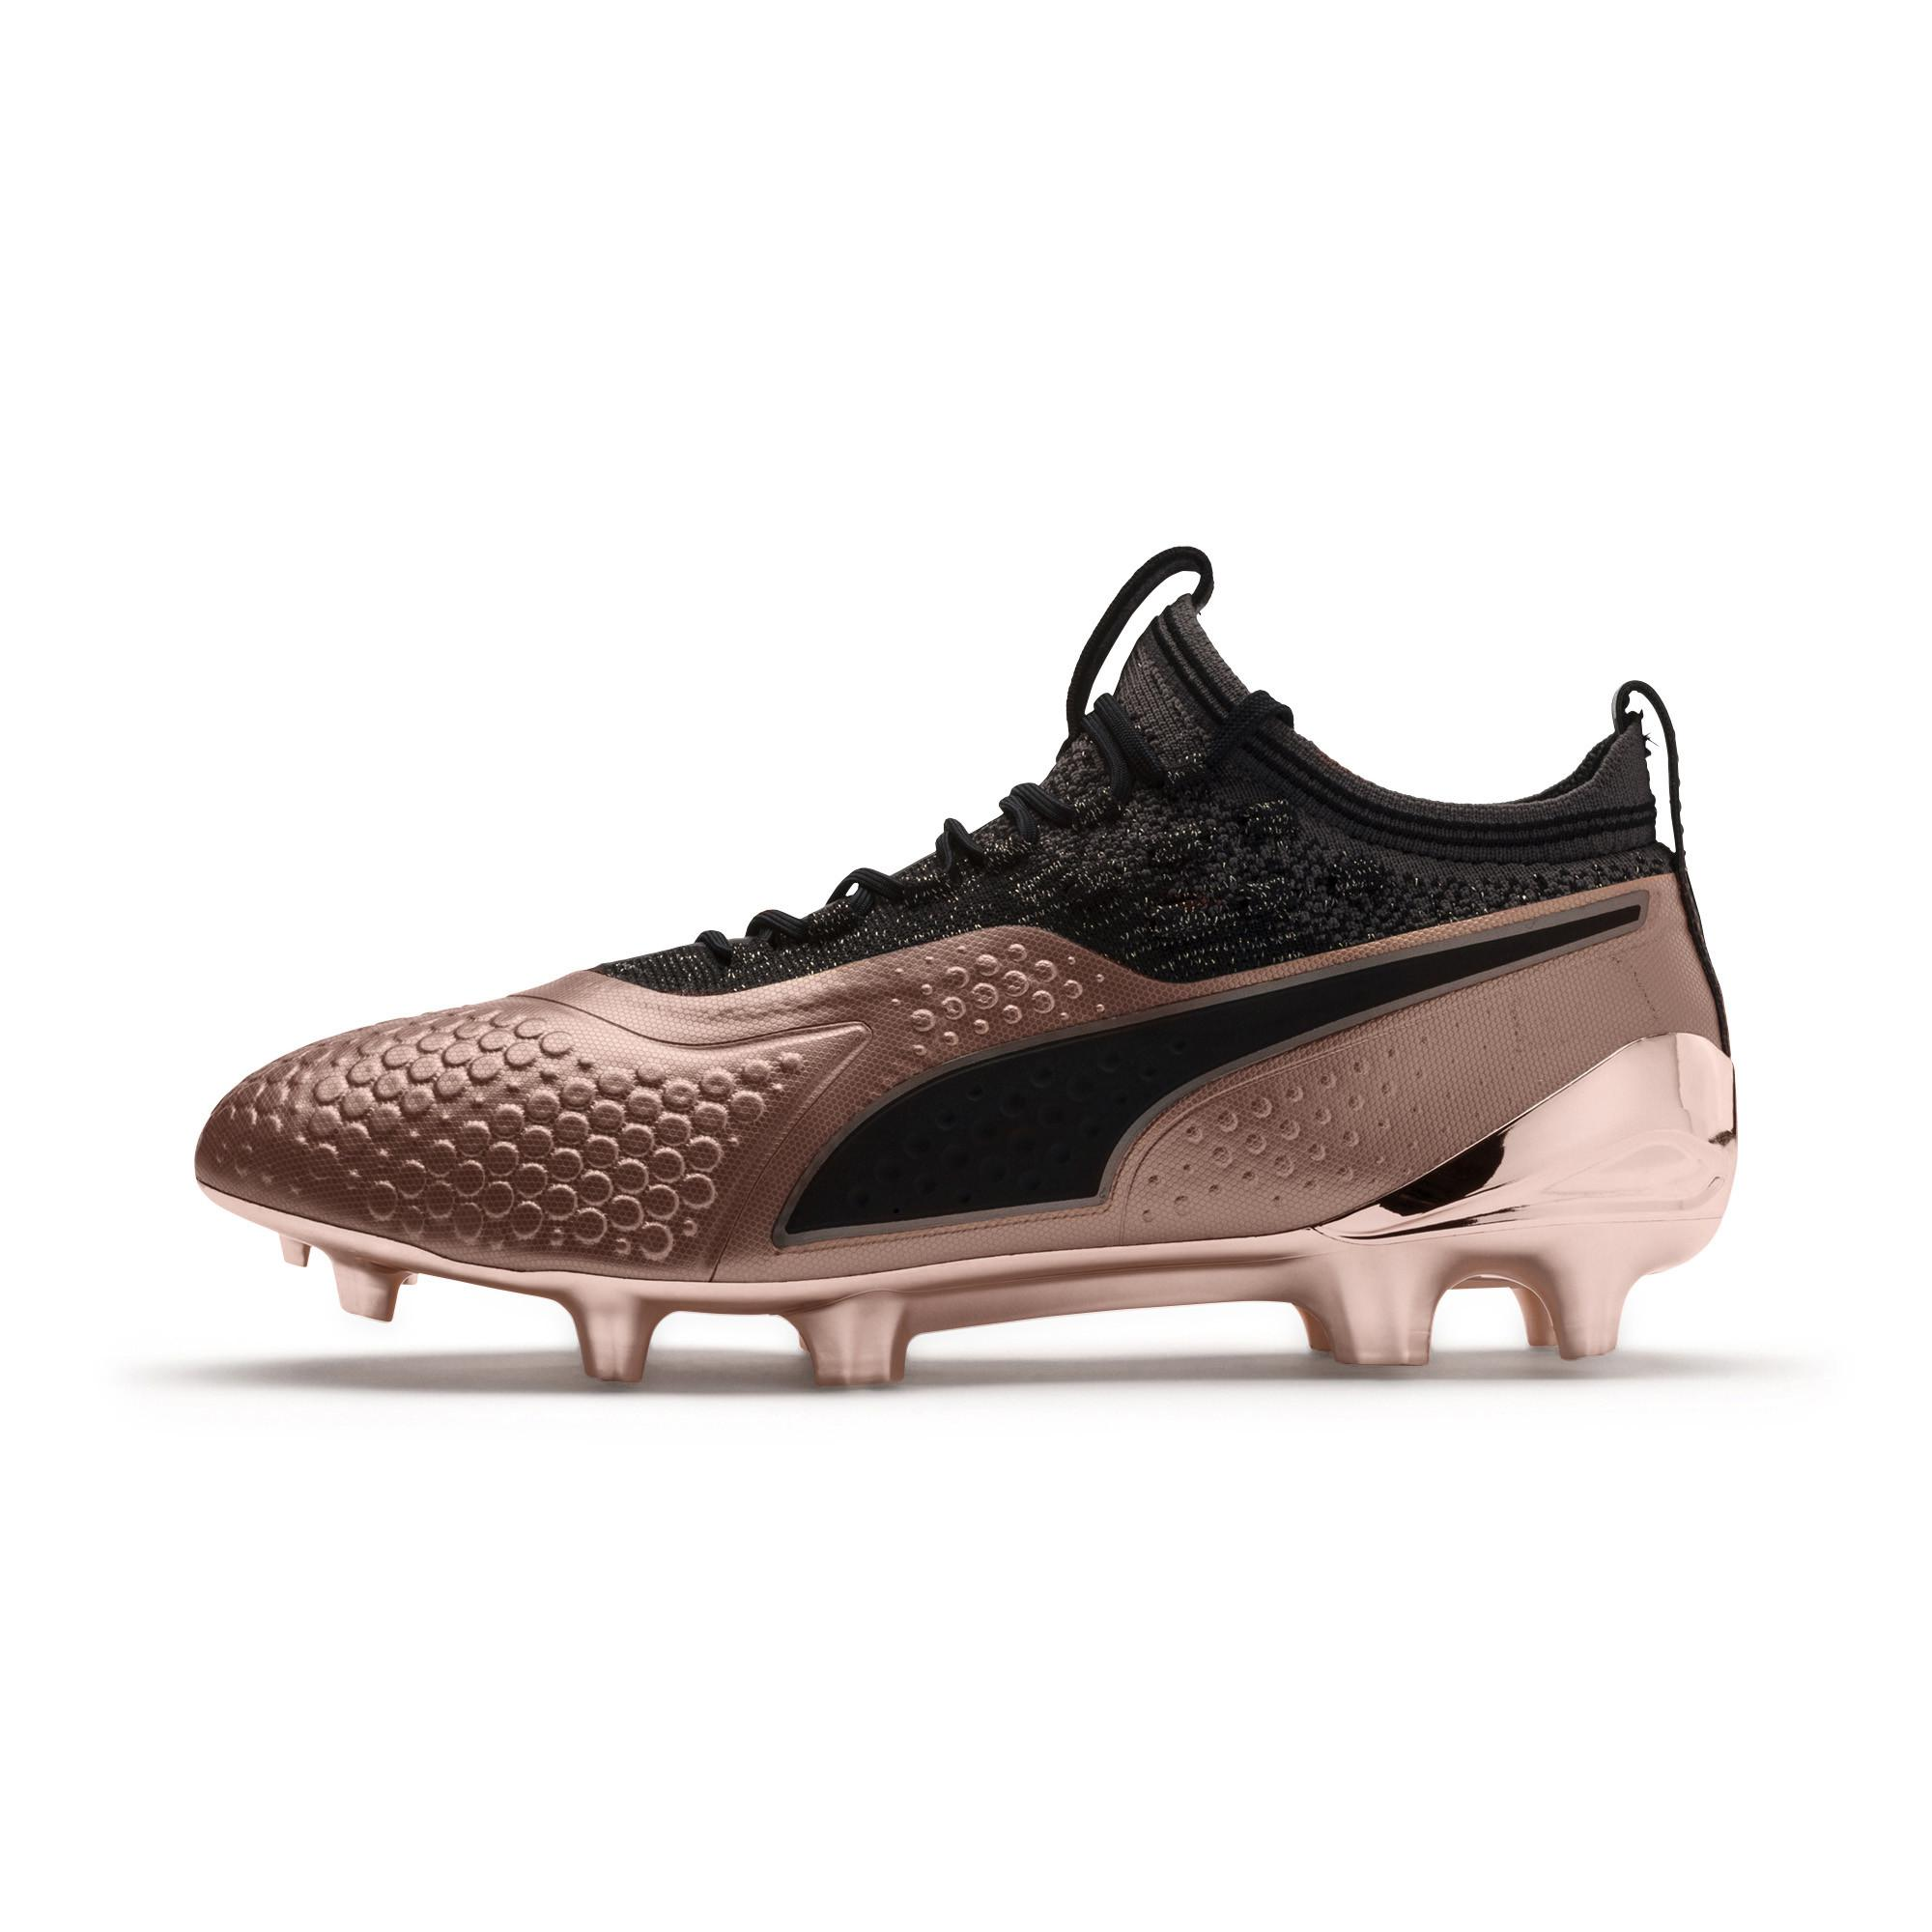 094a0485e78c Lyst - PUMA One 1 Glo Fg ag Men s Soccer Cleats for Men